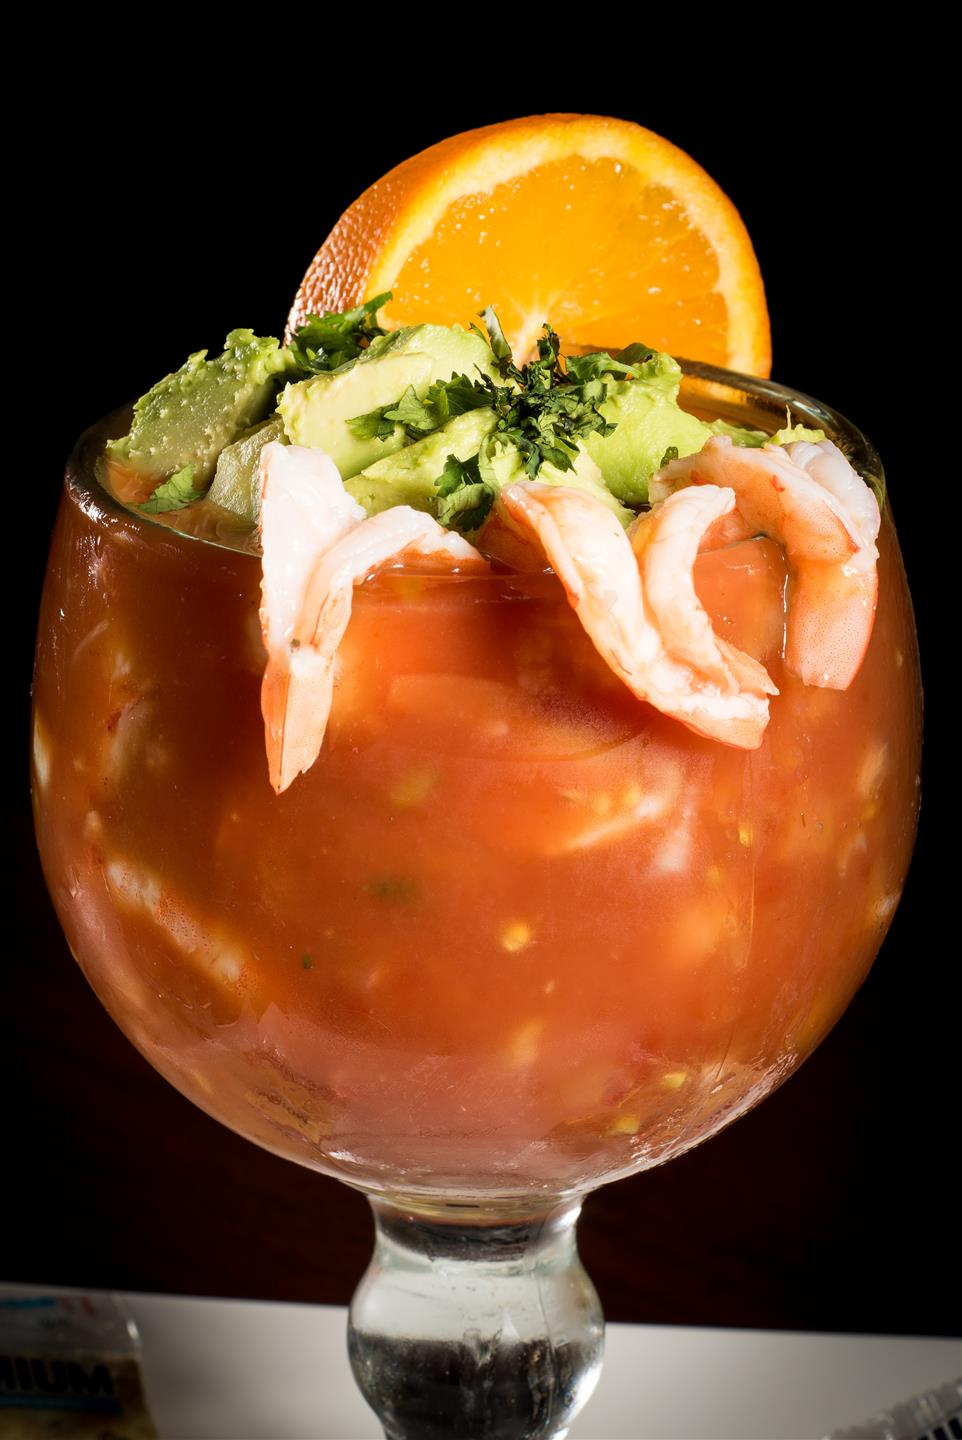 Shrimp Cocktail: Served with homemade cocktail sauce, chopped tomatoes, onions, cilantro and avocado